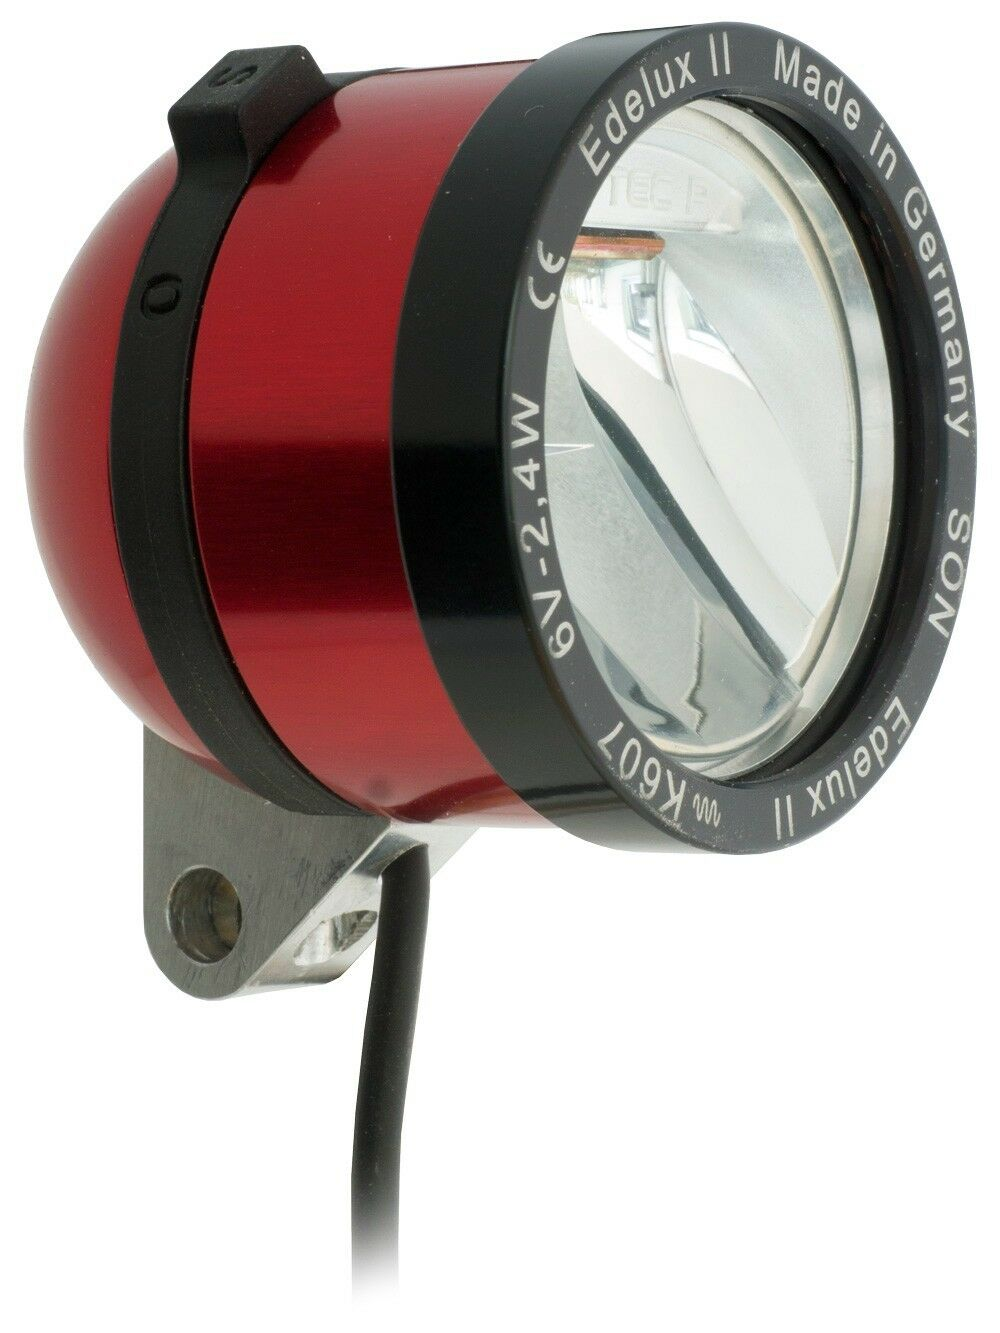 Novelty LED Headlight Son edelux II Red with 140 CM CABEL Loose Connections